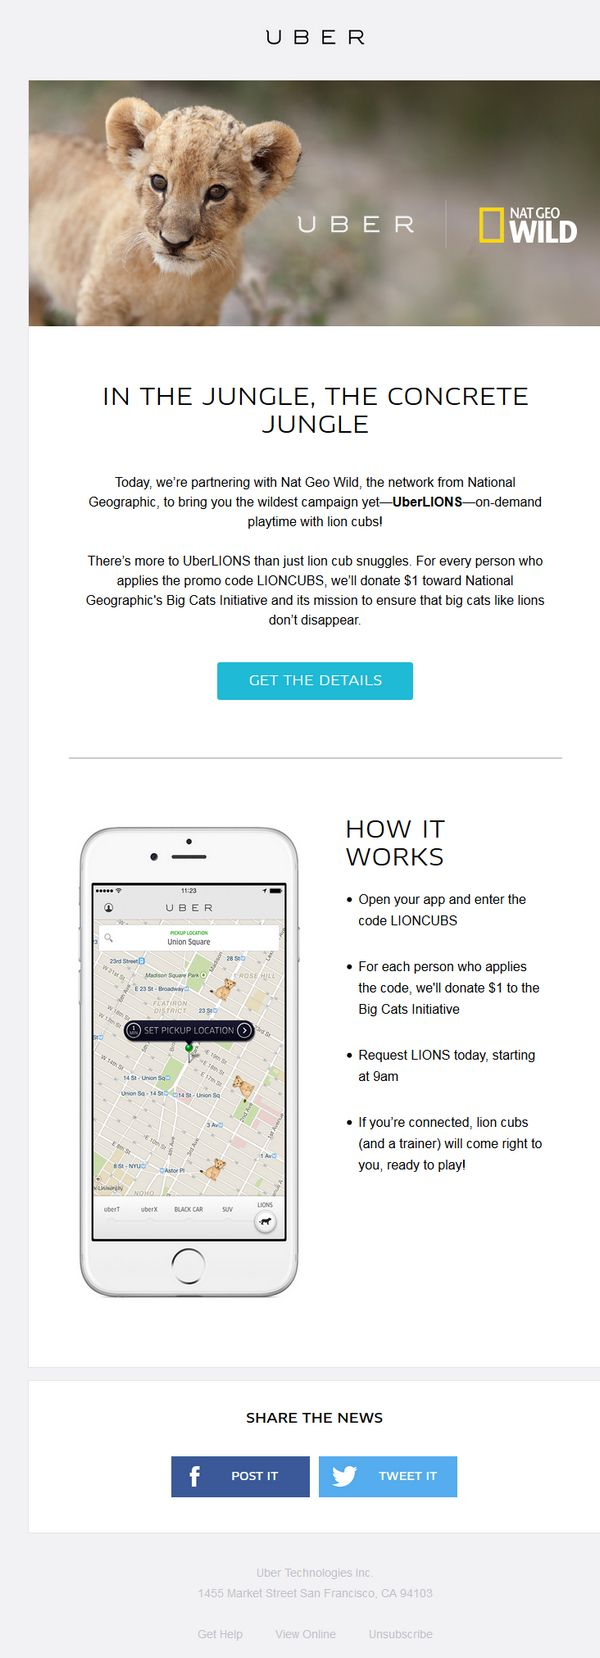 Uber's April Fools 2015 email to NYC market